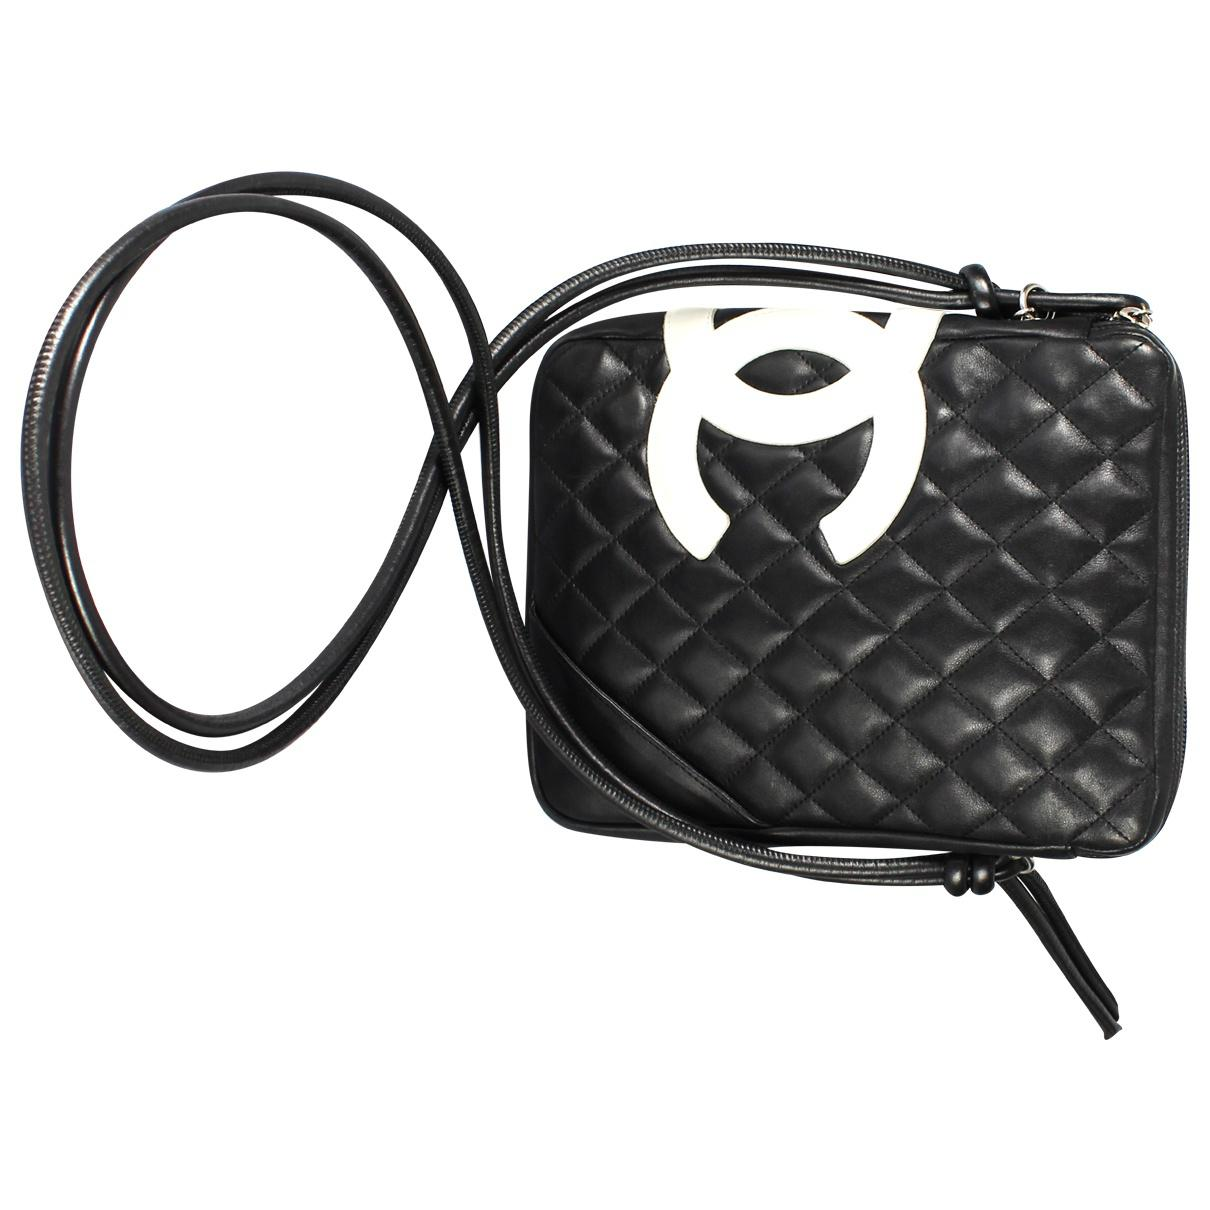 d20661689be7 Chanel Cambon Leather Crossbody Bag in Black - Lyst